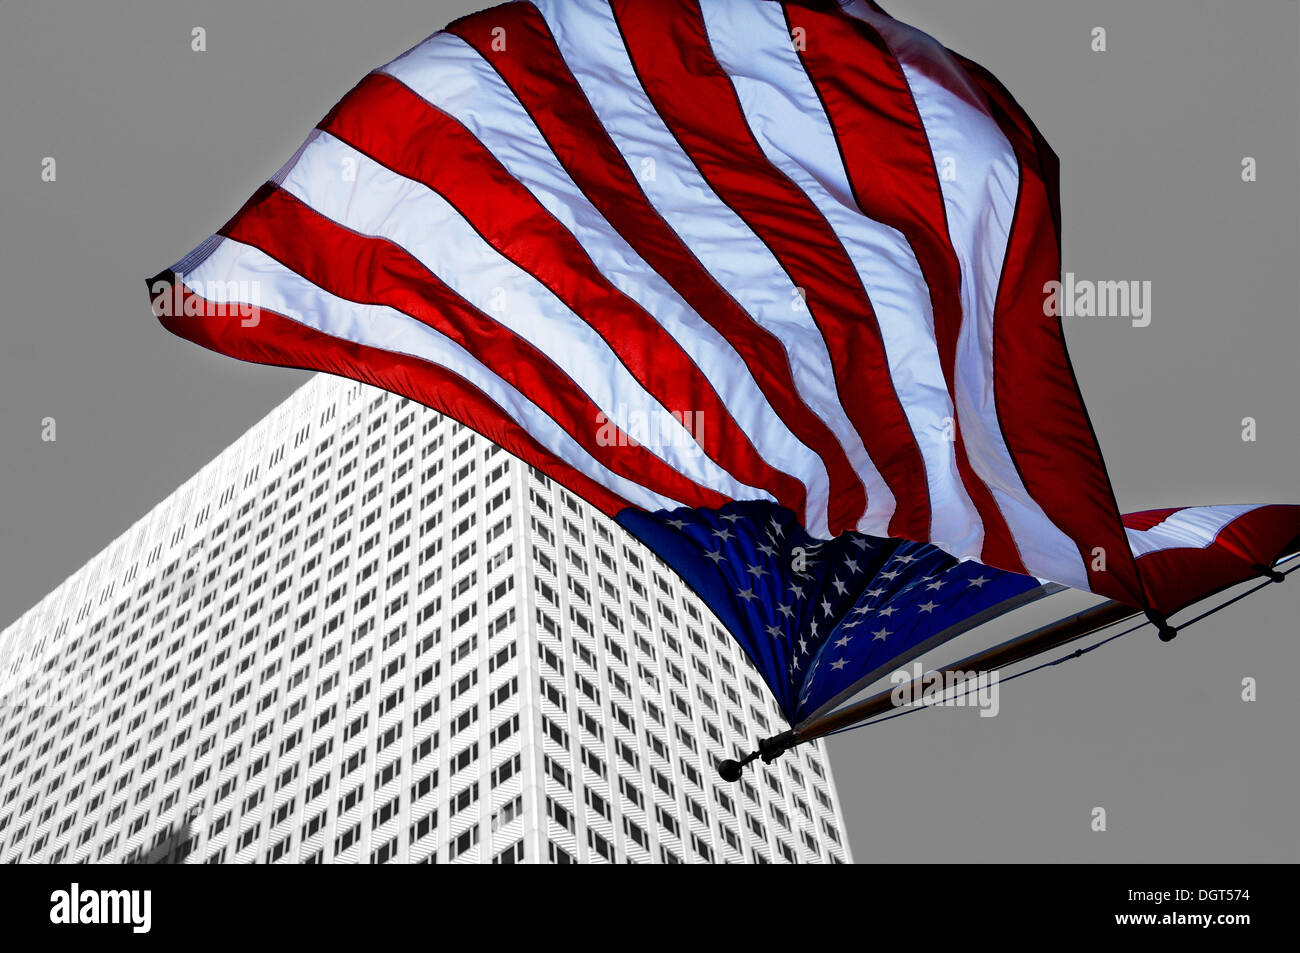 U.S.-American flag flying in front of a skyscraper, New York City, New York, United States Stock Photo